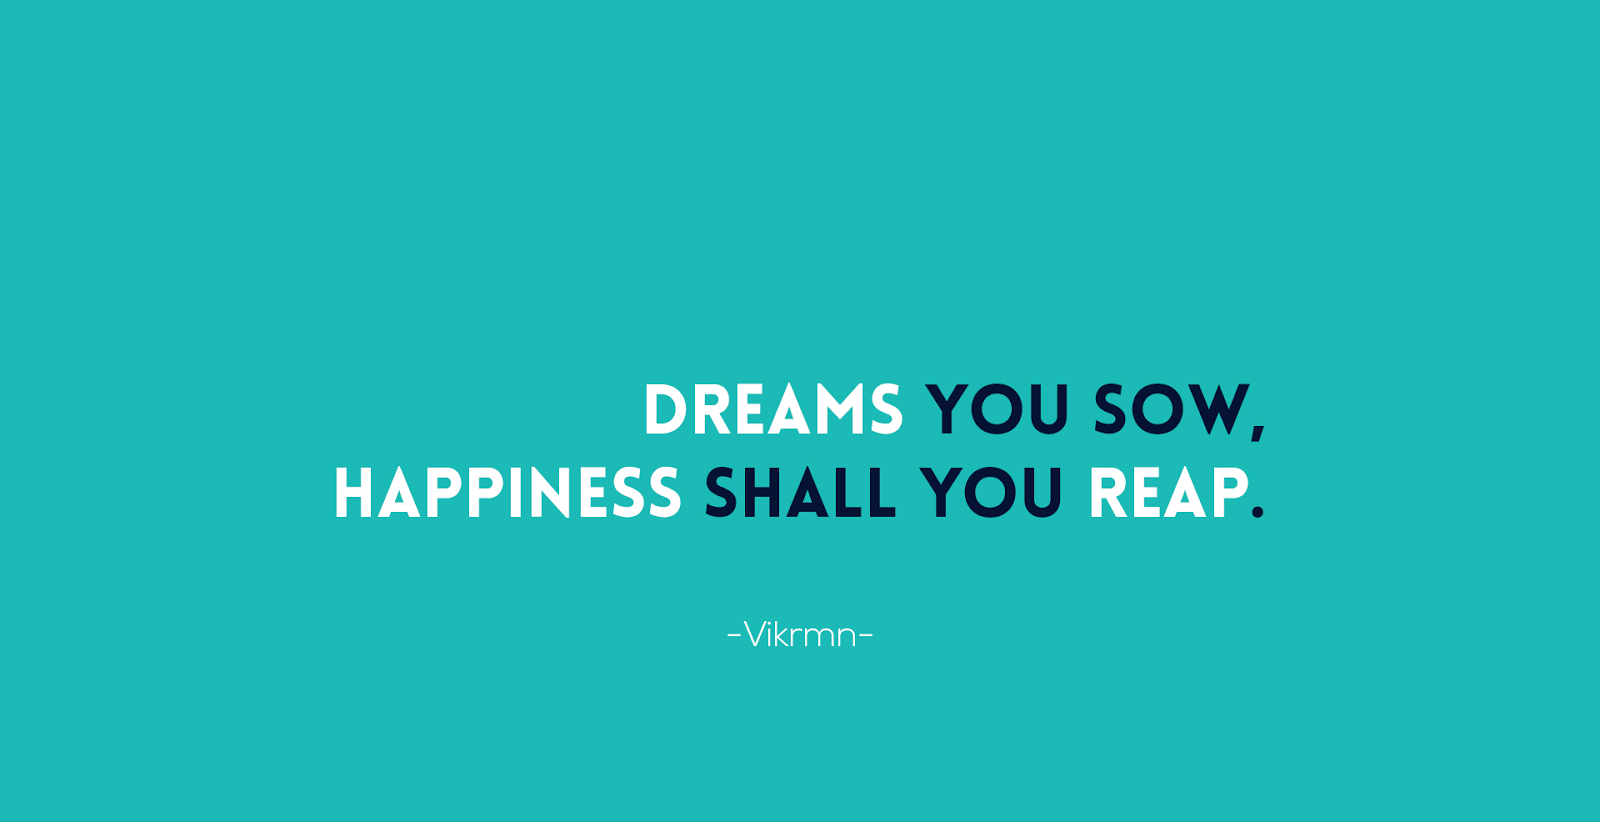 quote-dreams-happiness-sow-Vikrmn-author-10alone-ca-vikram-verma-chartered-accountat-kuwait